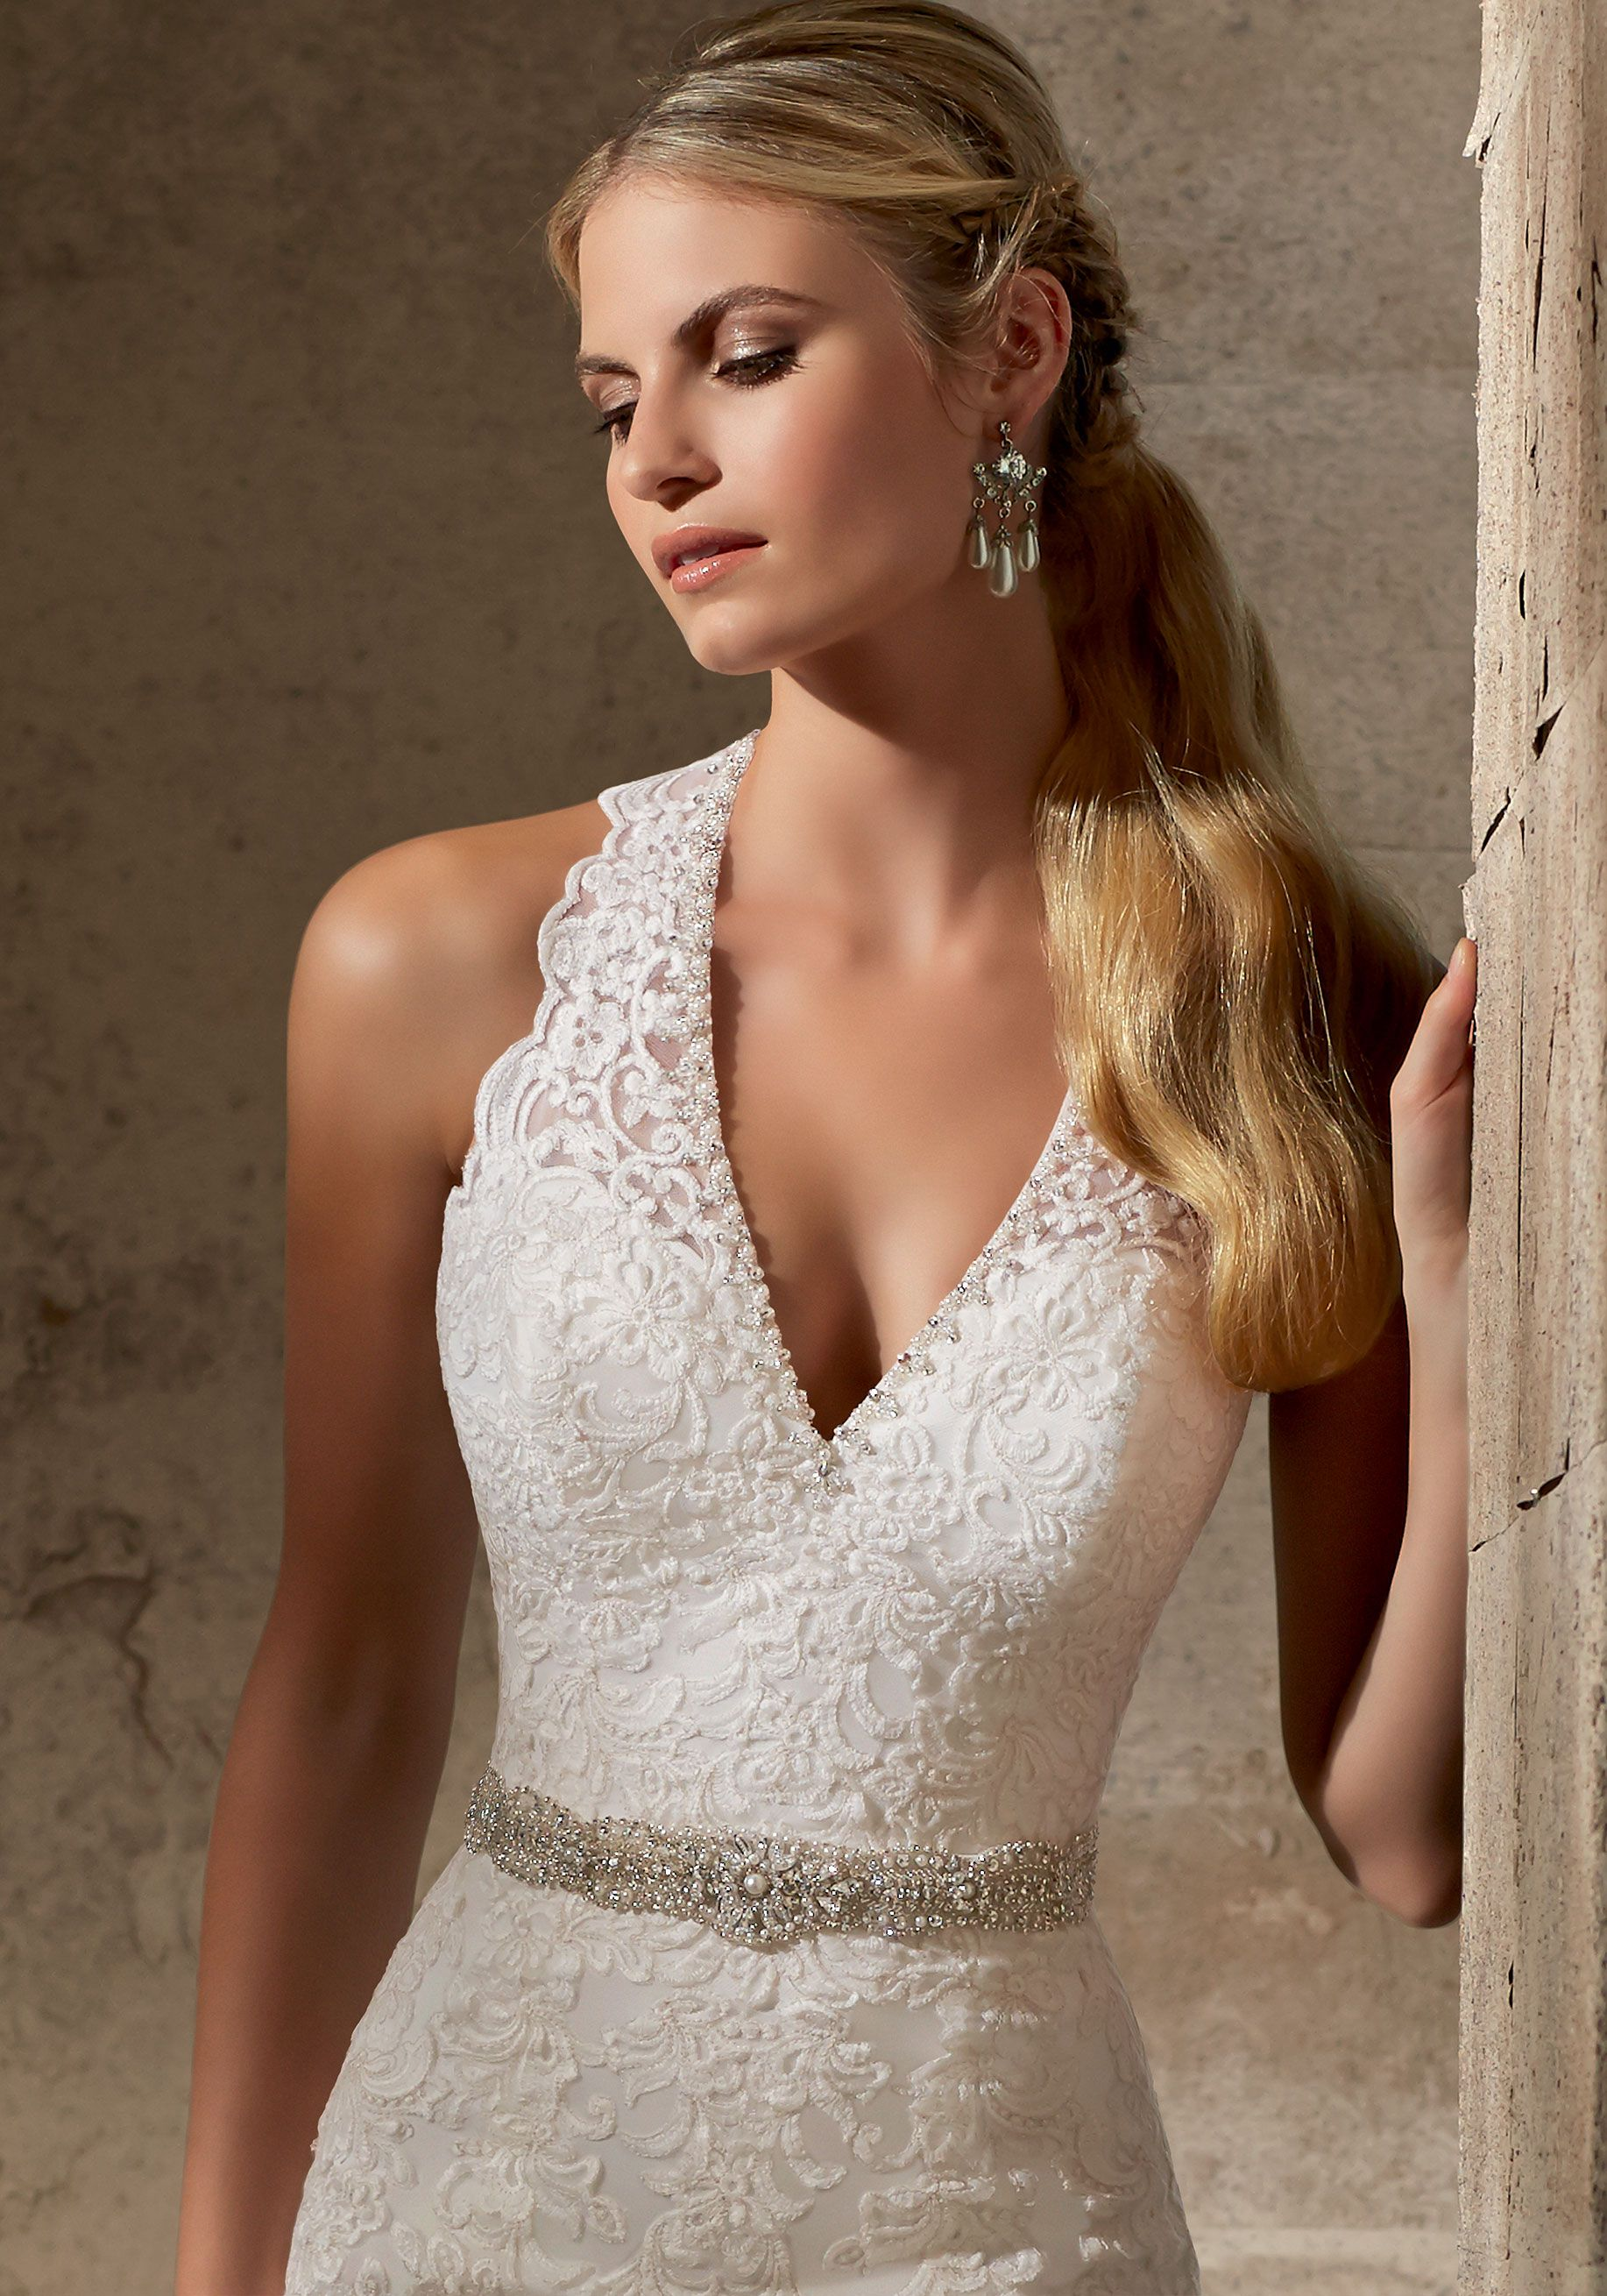 The halter wedding dress scalloped illusion neckline and a double